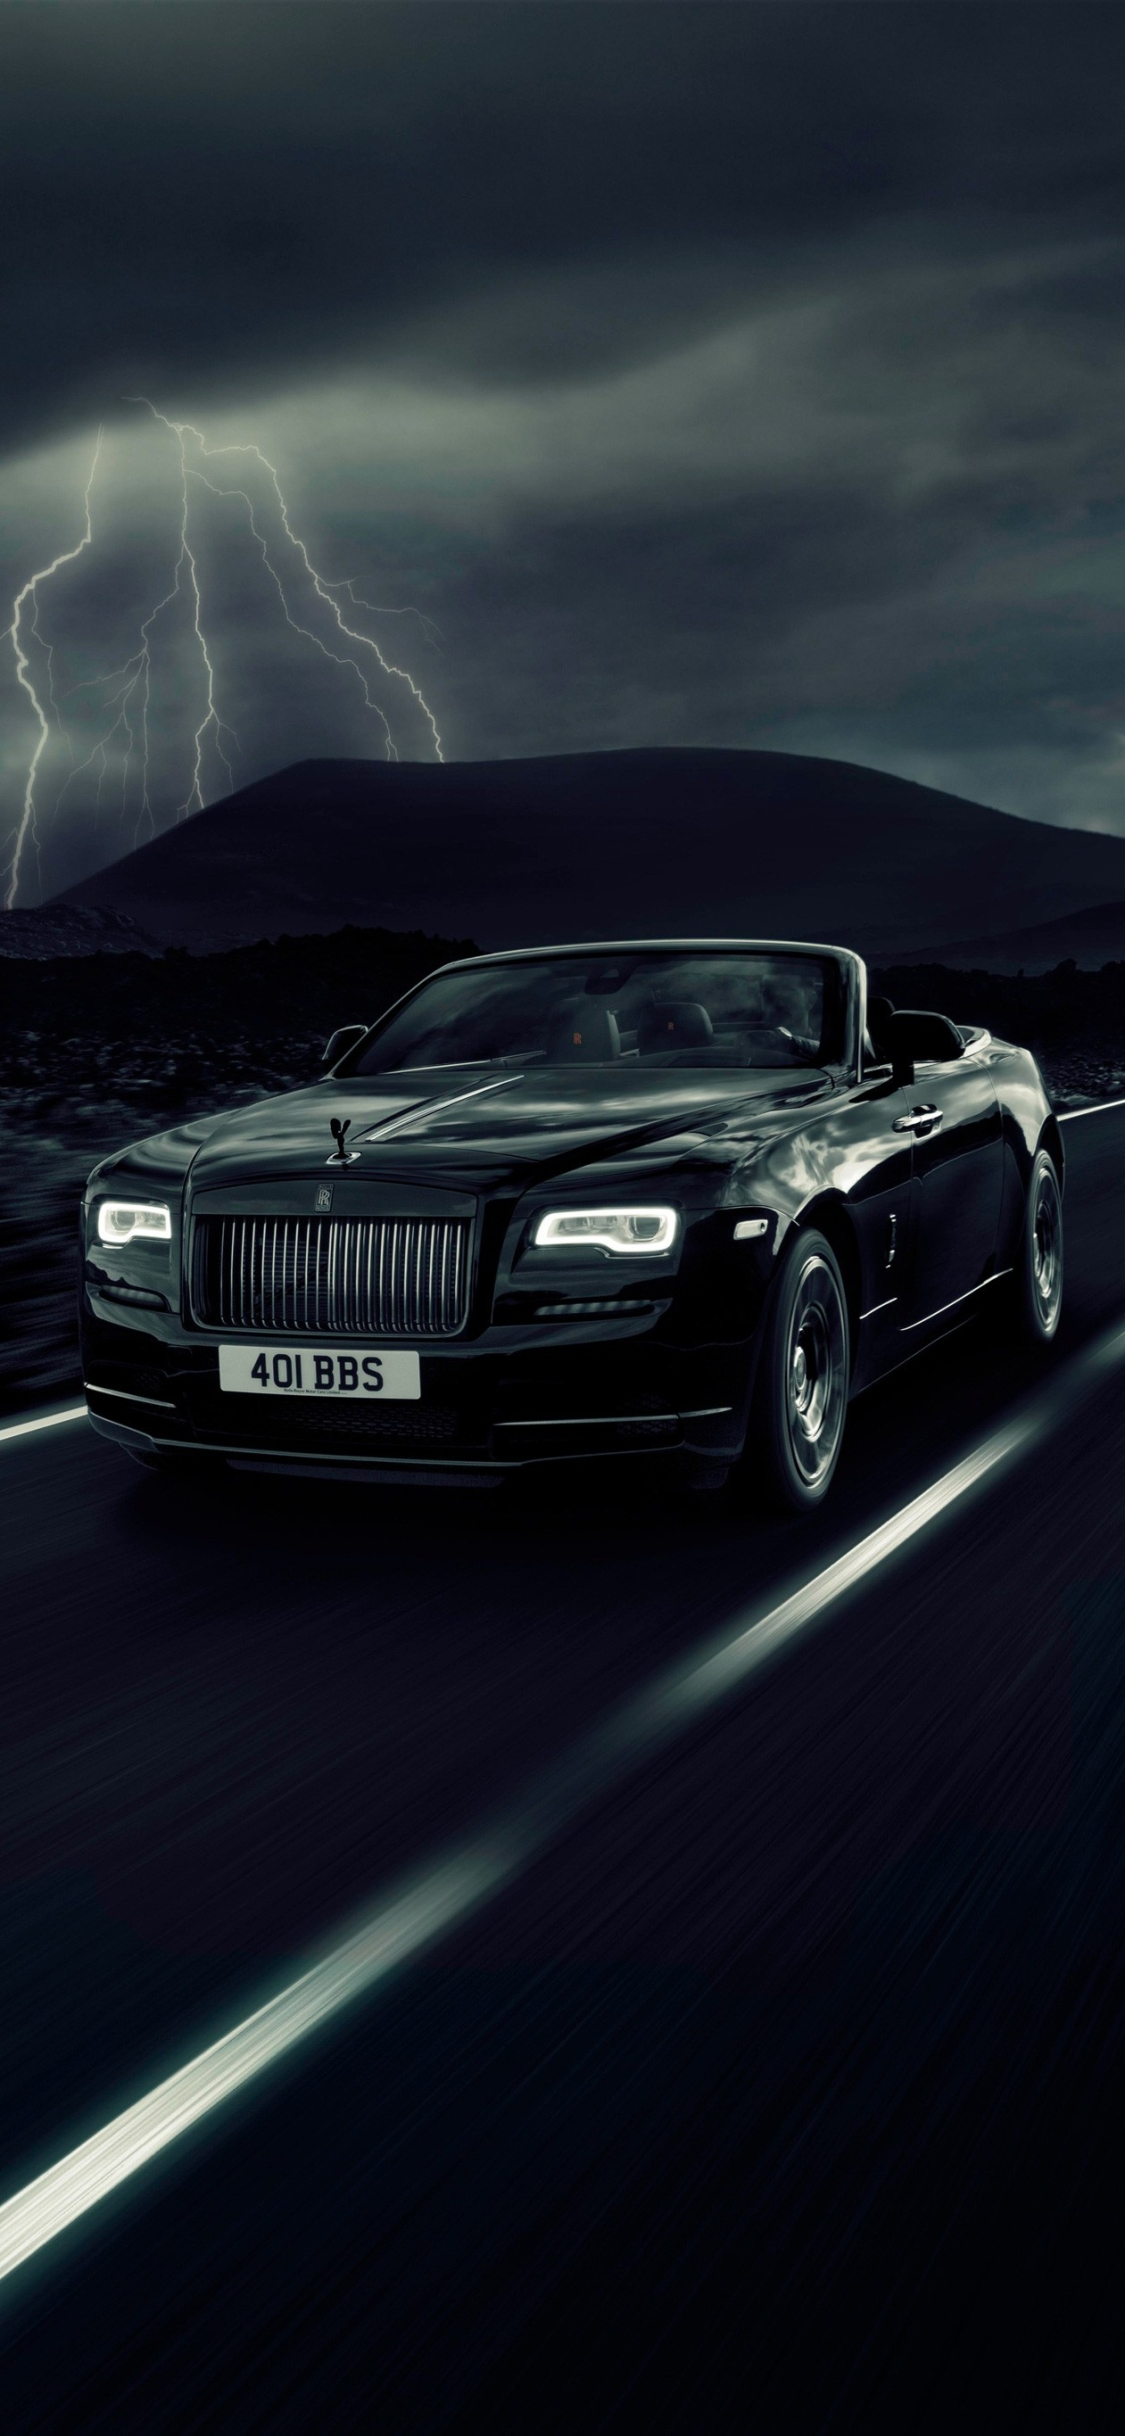 Rolls Royce Dawn mobile wallpaper